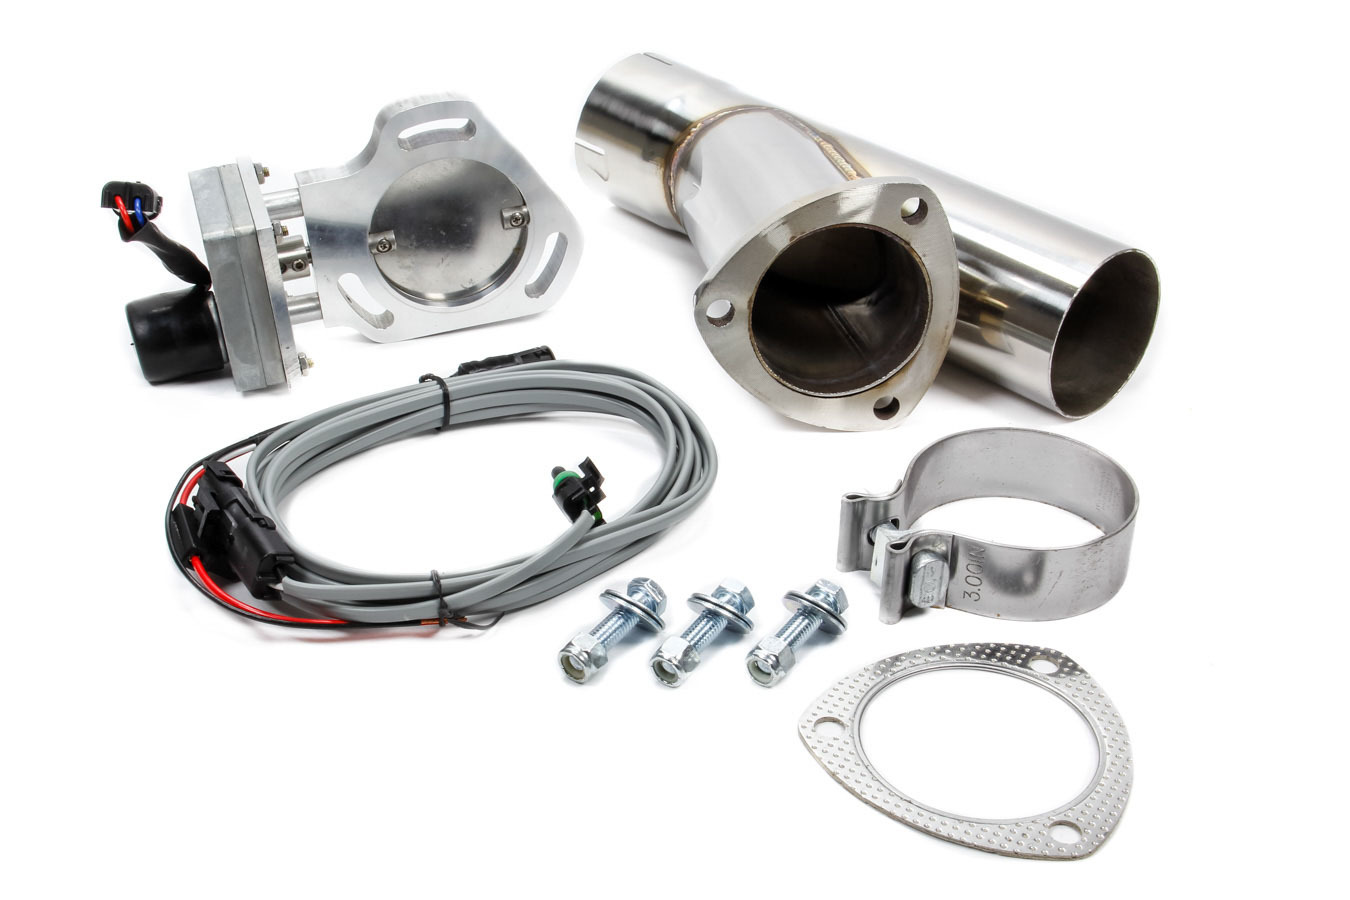 Pypes Performance Exhaust HVE13K Exhaust Cut-Out, Electric, Clamp-On, Single, 3 in Pipe Diameter, Hardware / Wire Harness / Y-Pipe Included, Aluminum / Stainless, Natural / Polished, Kit